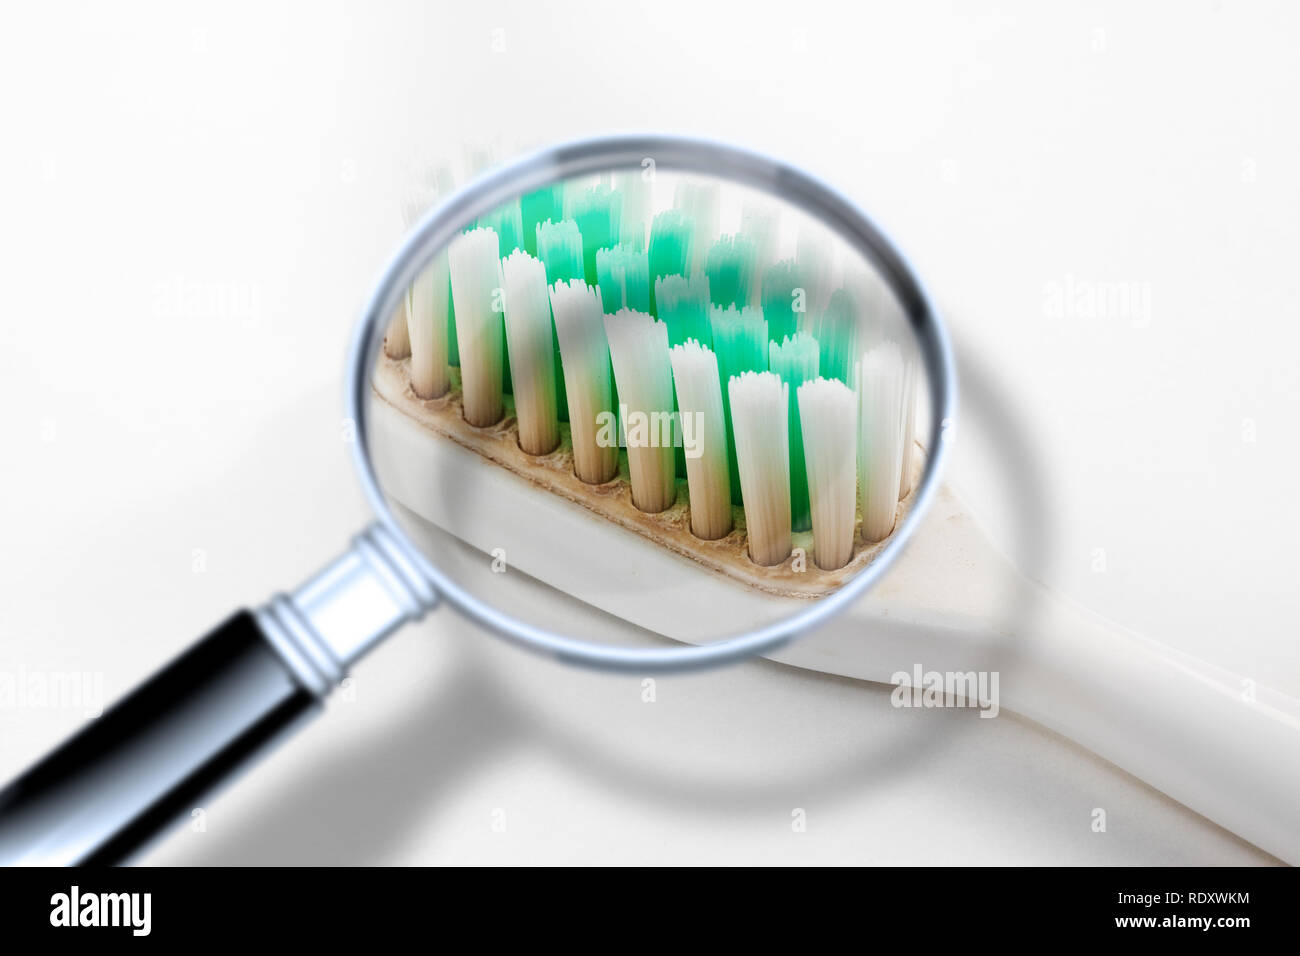 Old dirty and unhygienic toothbrush - Concept image seen through a magnifying glass - Stock Image